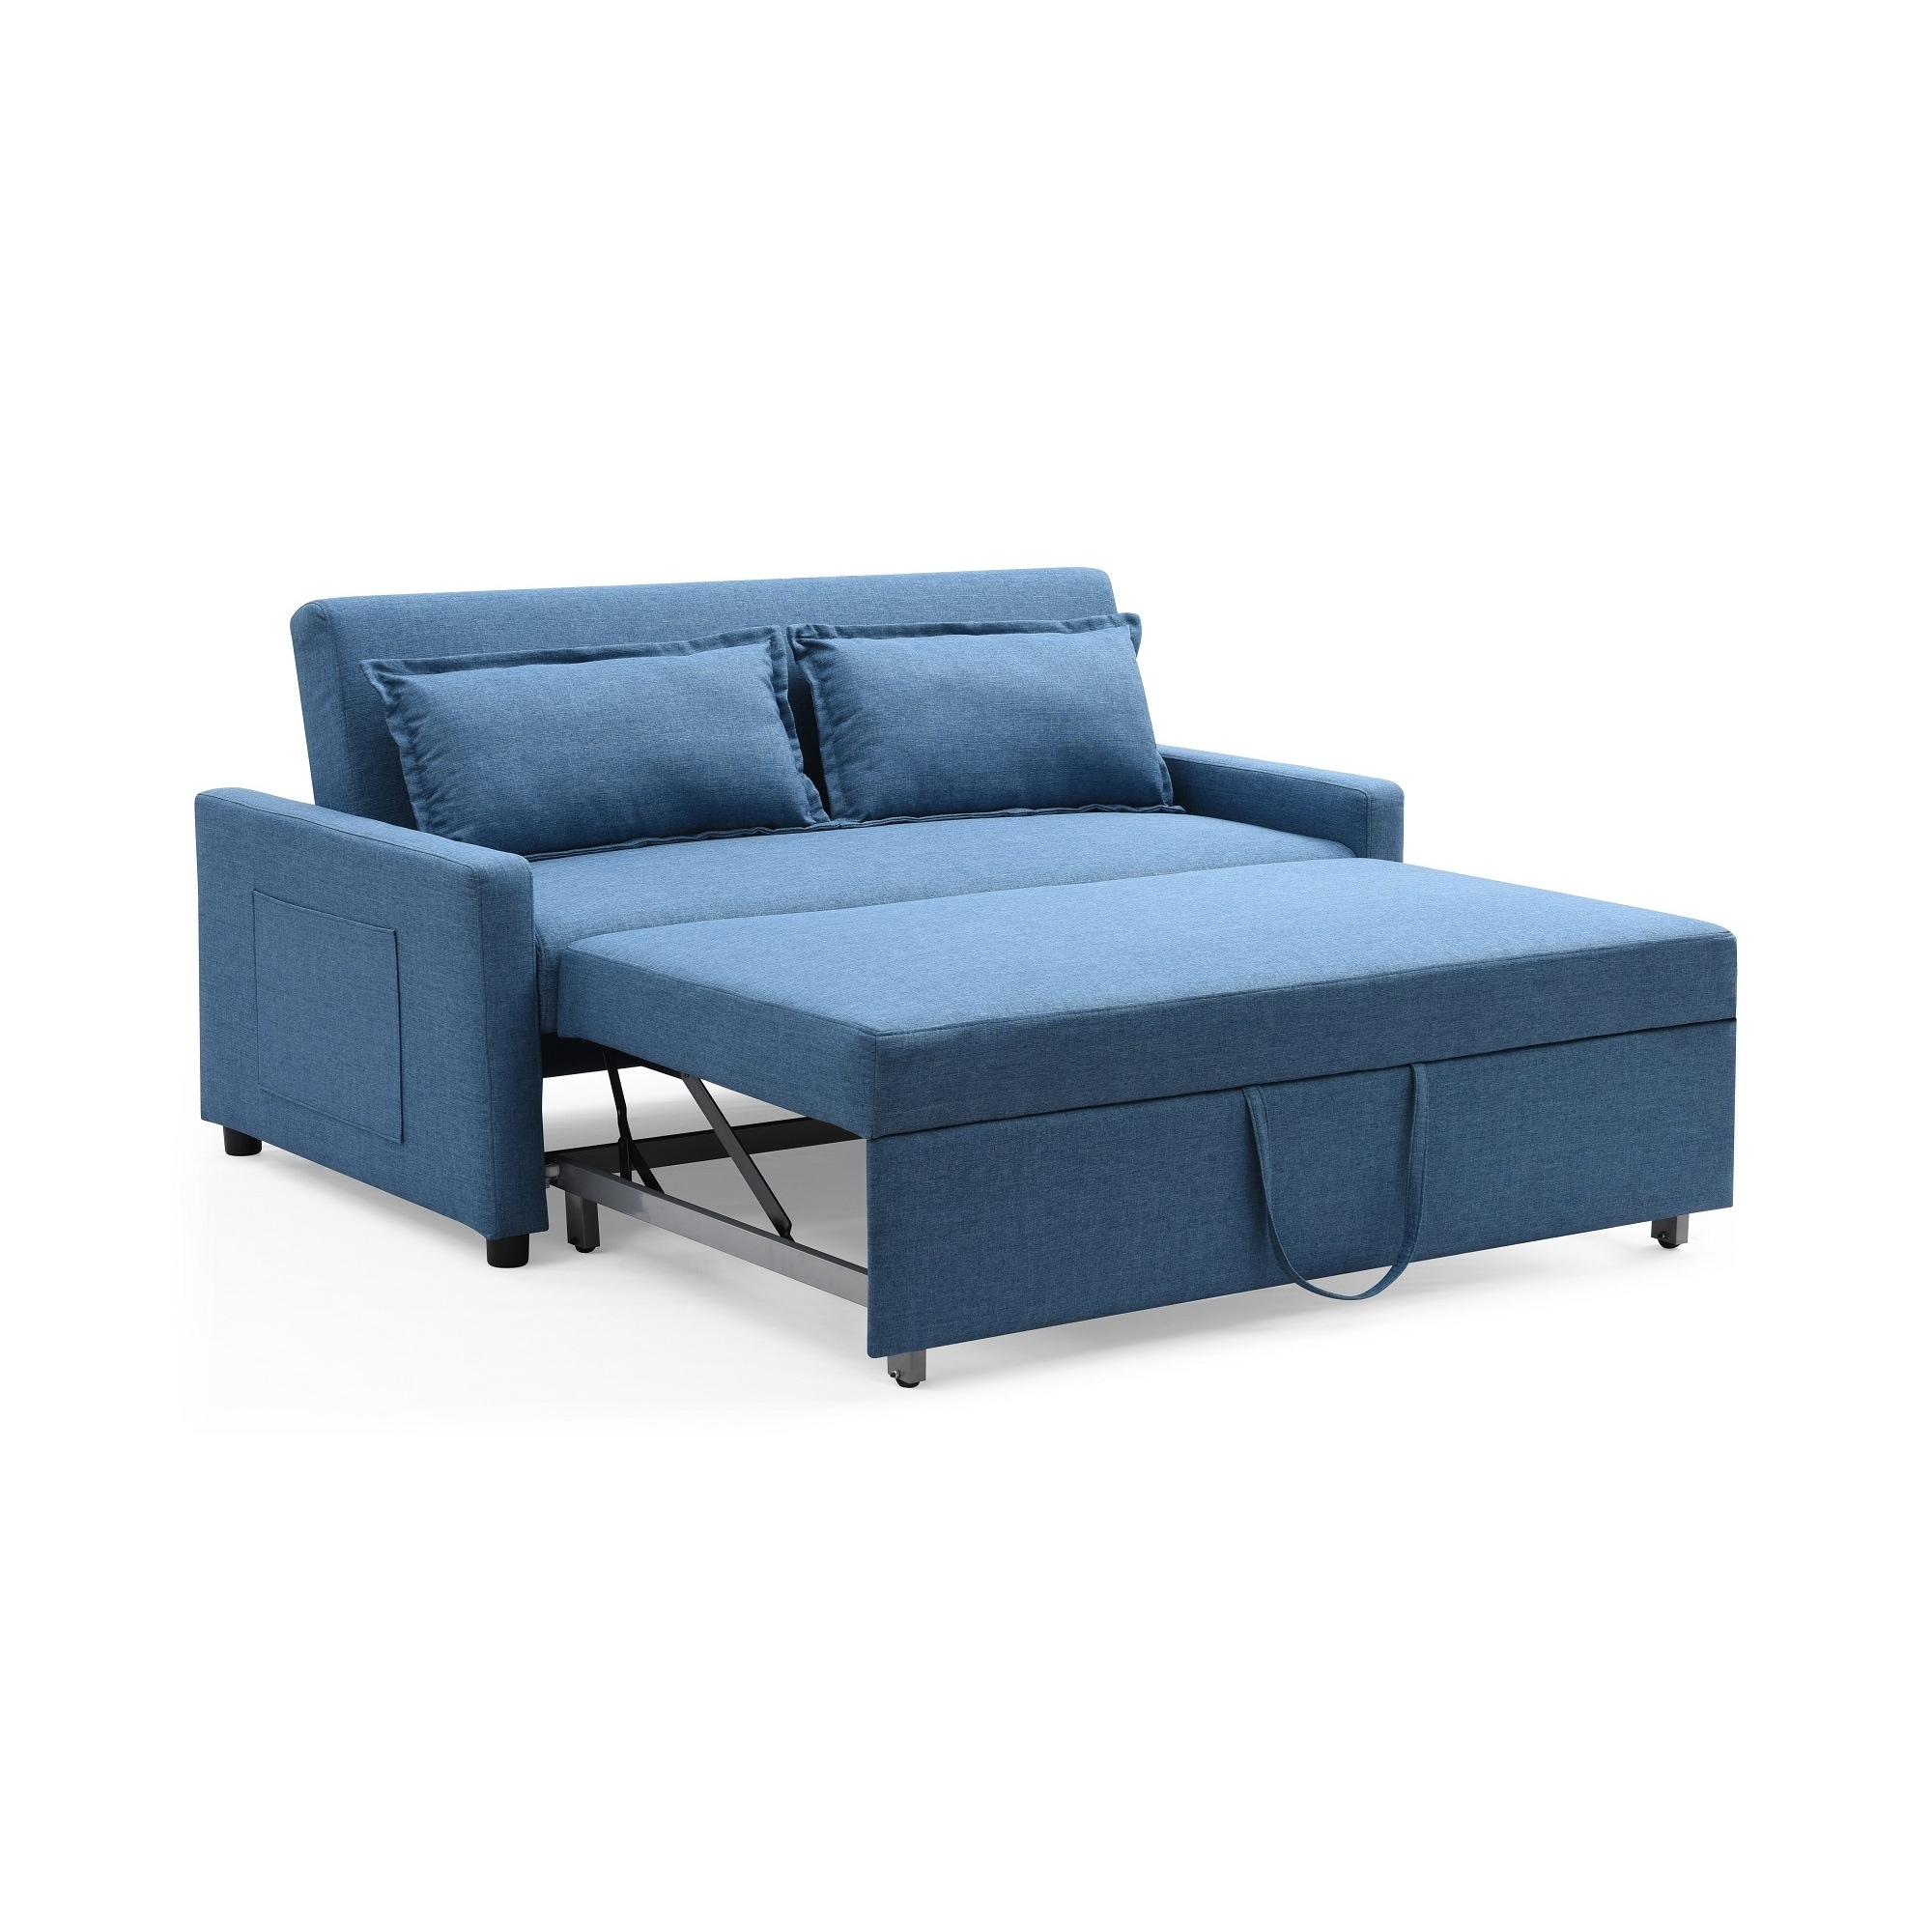 Superior Shop The Curated Nomad Stadtmuller Convertible Sofa With Pullout Bed   Free  Shipping Today   Overstock.com   20254244